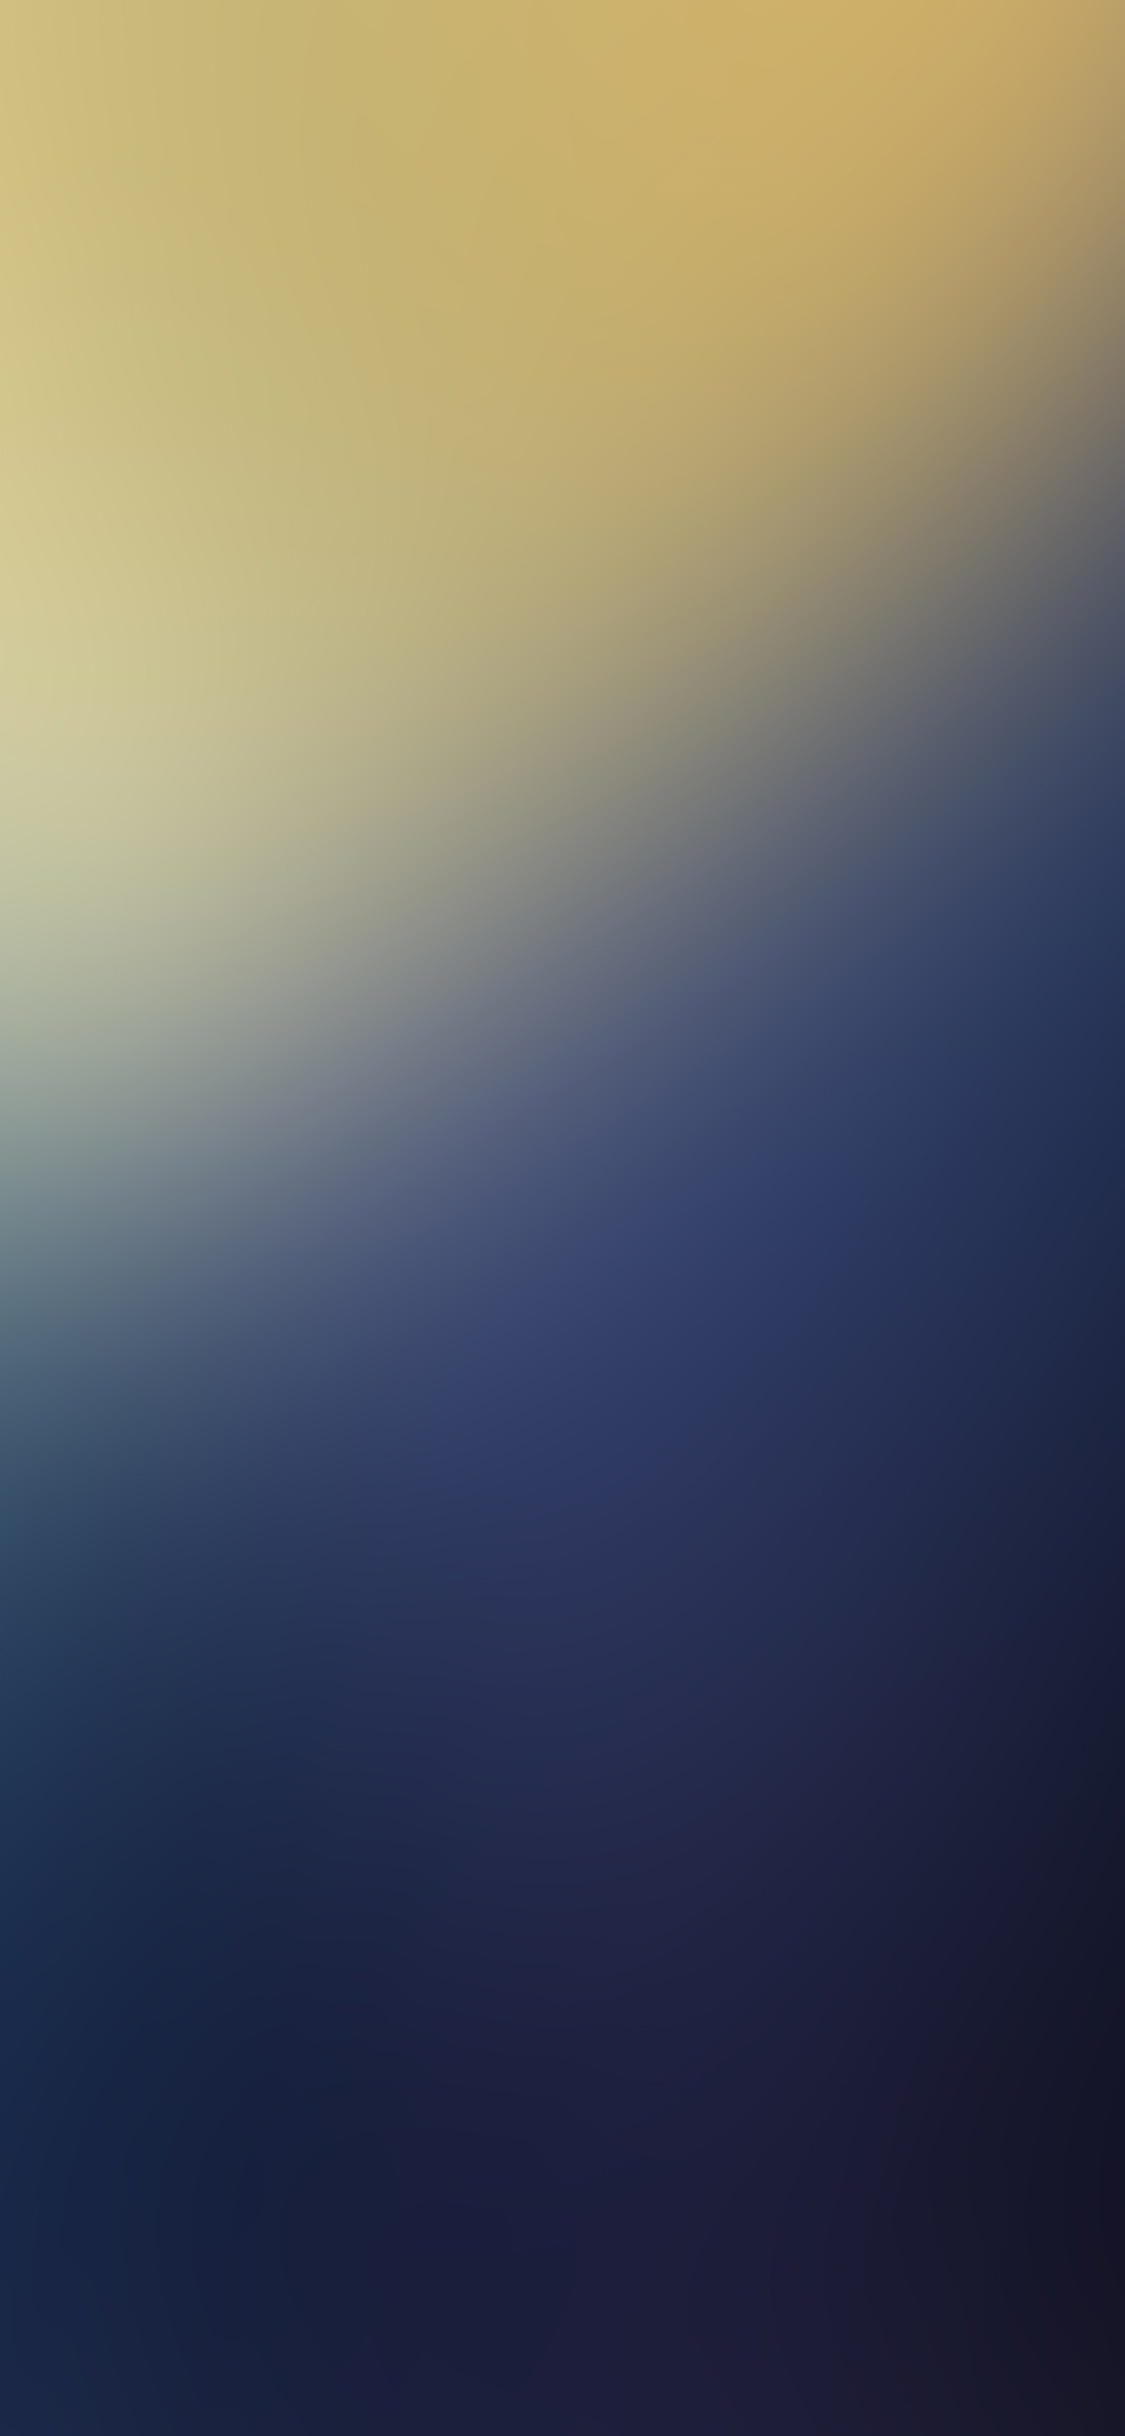 iPhoneXpapers.com-Apple-iPhone-wallpaper-sj48-official-night-blue-dark-yellow-gradation-blur